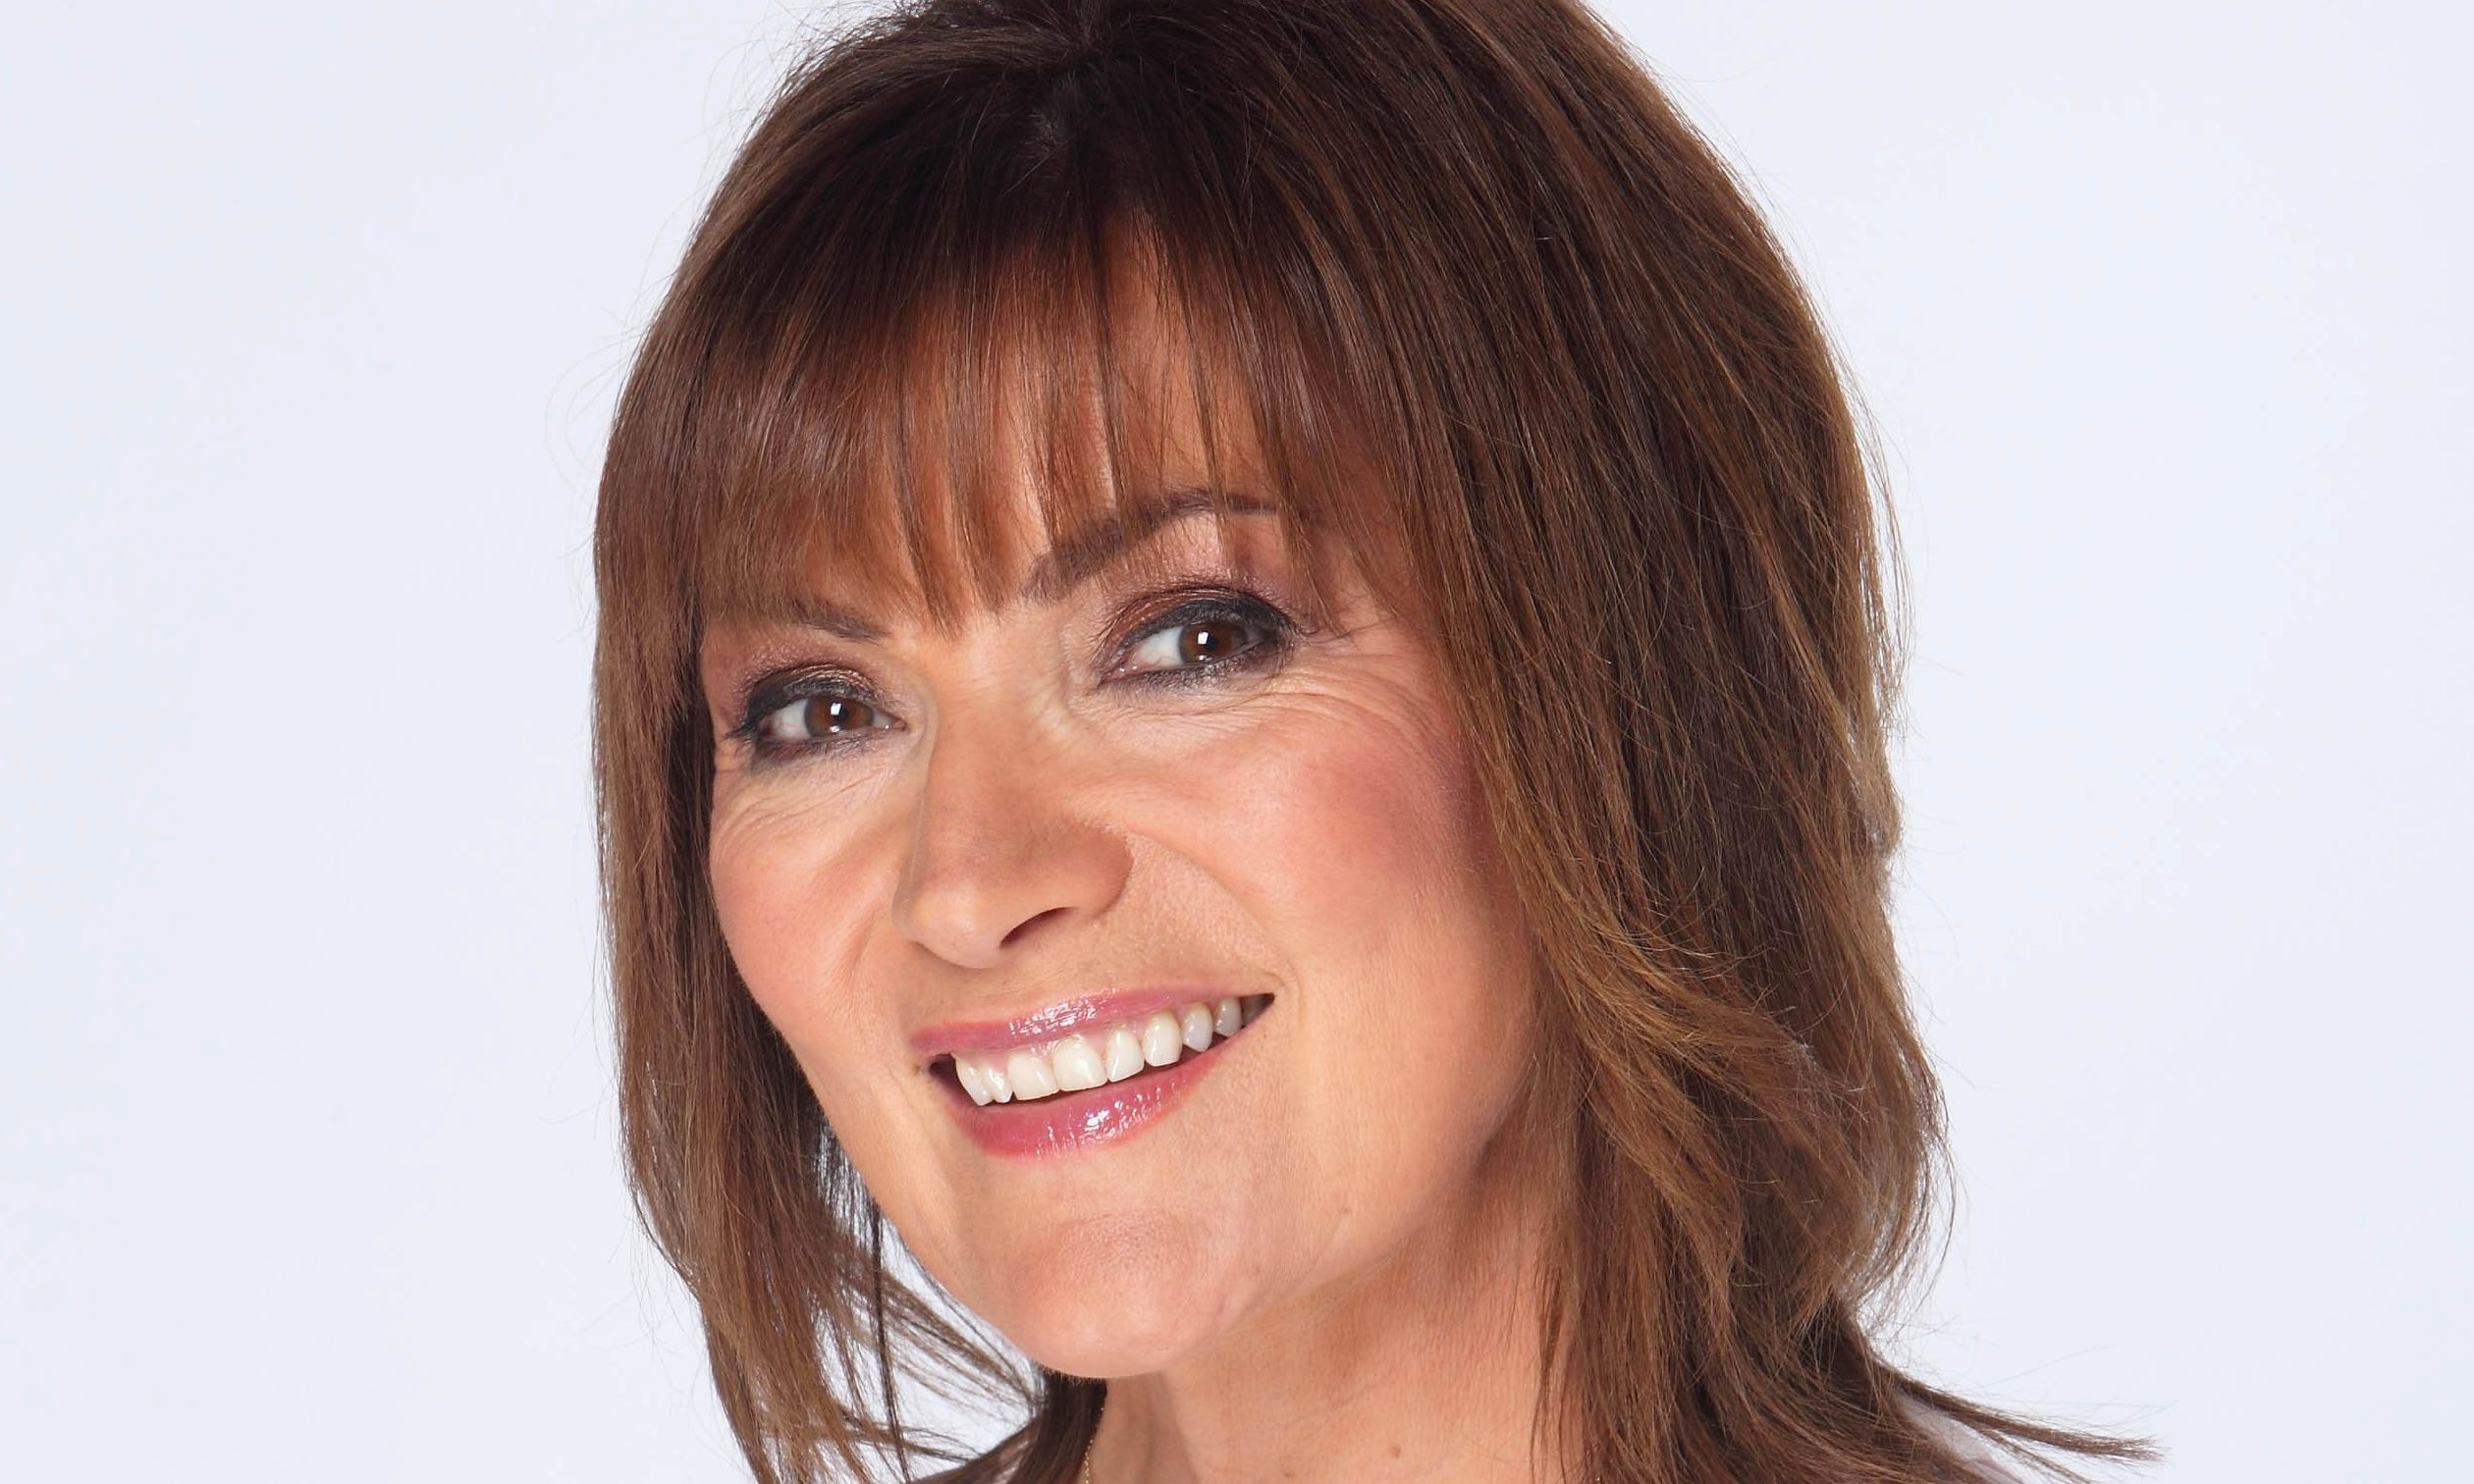 Lorraine Kelly has helped launch a crowdfunding appeal for VisitDundee.